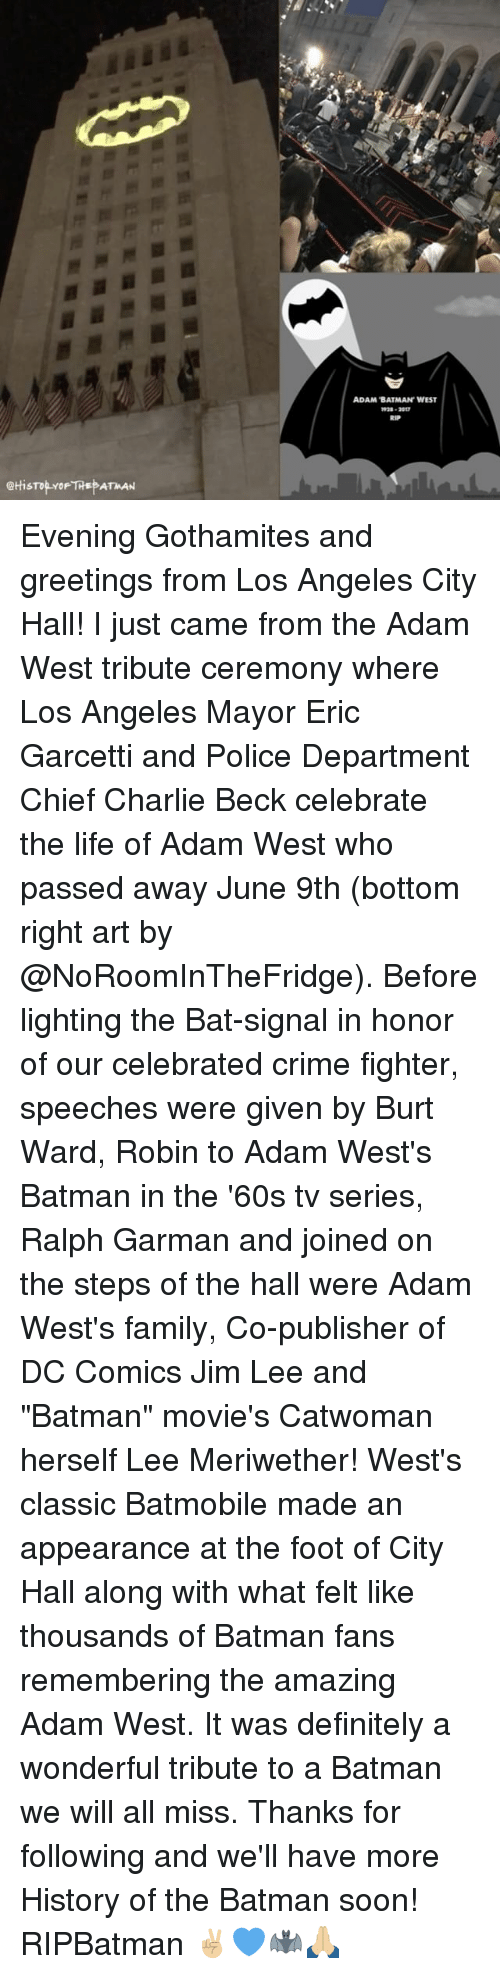 "Batman, Charlie, and Crime: eHisTop YoF THE ATMAN  ADAM BATMAN WEST Evening Gothamites and greetings from Los Angeles City Hall! I just came from the Adam West tribute ceremony where Los Angeles Mayor Eric Garcetti and Police Department Chief Charlie Beck celebrate the life of Adam West who passed away June 9th (bottom right art by @NoRoomInTheFridge). Before lighting the Bat-signal in honor of our celebrated crime fighter, speeches were given by Burt Ward, Robin to Adam West's Batman in the '60s tv series, Ralph Garman and joined on the steps of the hall were Adam West's family, Co-publisher of DC Comics Jim Lee and ""Batman"" movie's Catwoman herself Lee Meriwether! West's classic Batmobile made an appearance at the foot of City Hall along with what felt like thousands of Batman fans remembering the amazing Adam West. It was definitely a wonderful tribute to a Batman we will all miss. Thanks for following and we'll have more History of the Batman soon! RIPBatman ✌🏼💙🦇🙏🏼"